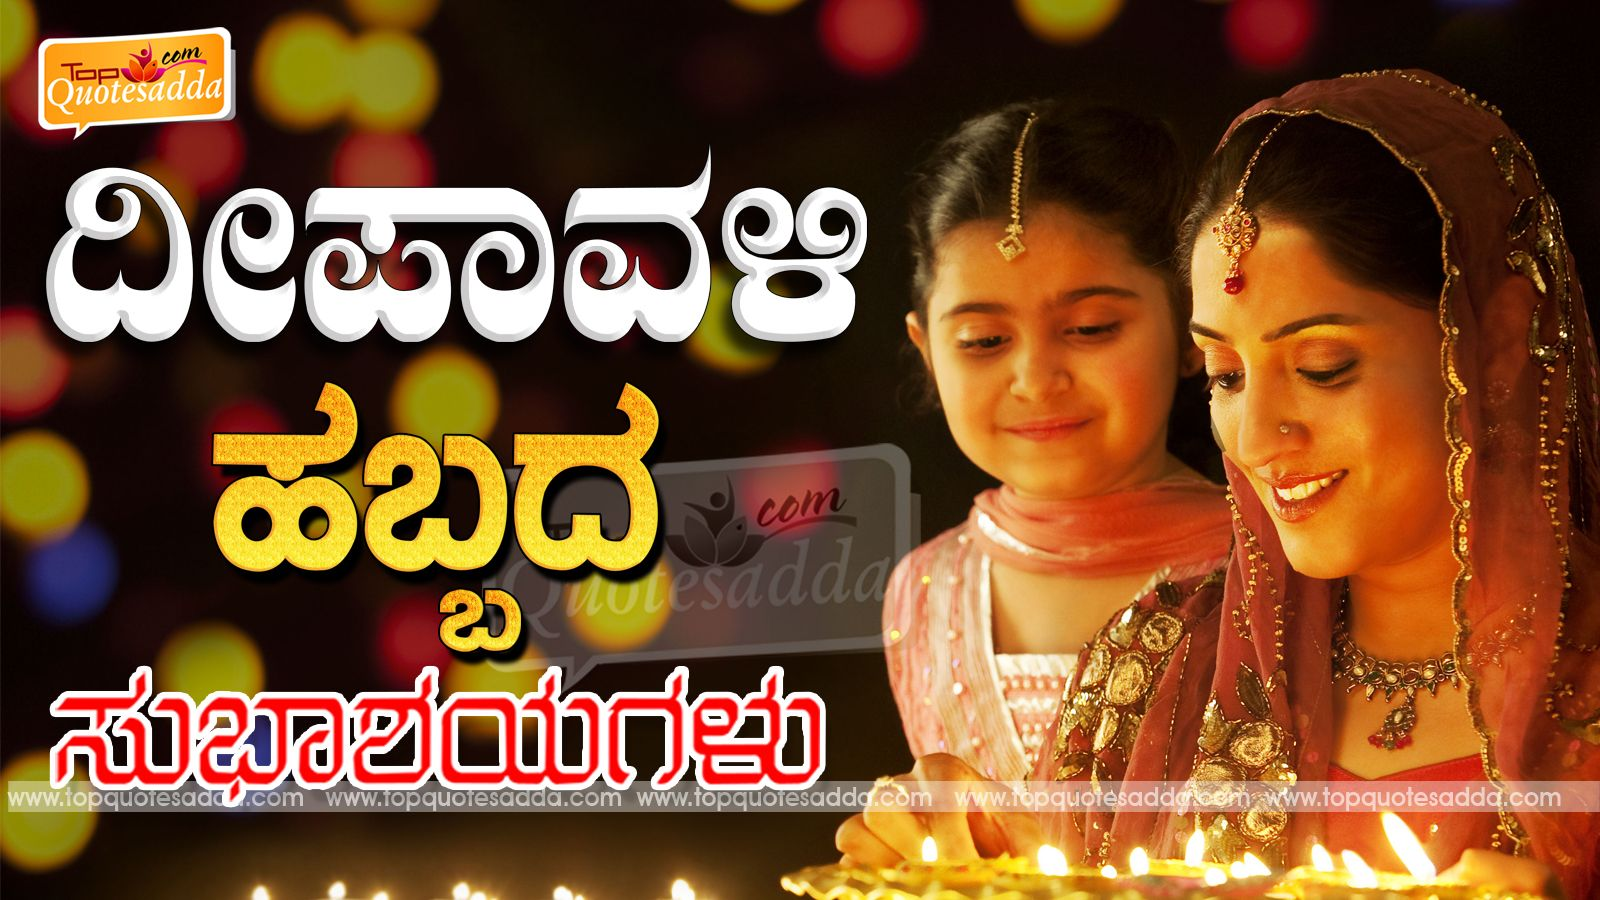 Deepavali kannada quotes and messages online top kannada diwali deepavali kannada quotes and messages online top kannada diwali wishes and quotations onlinehappy kristyandbryce Gallery